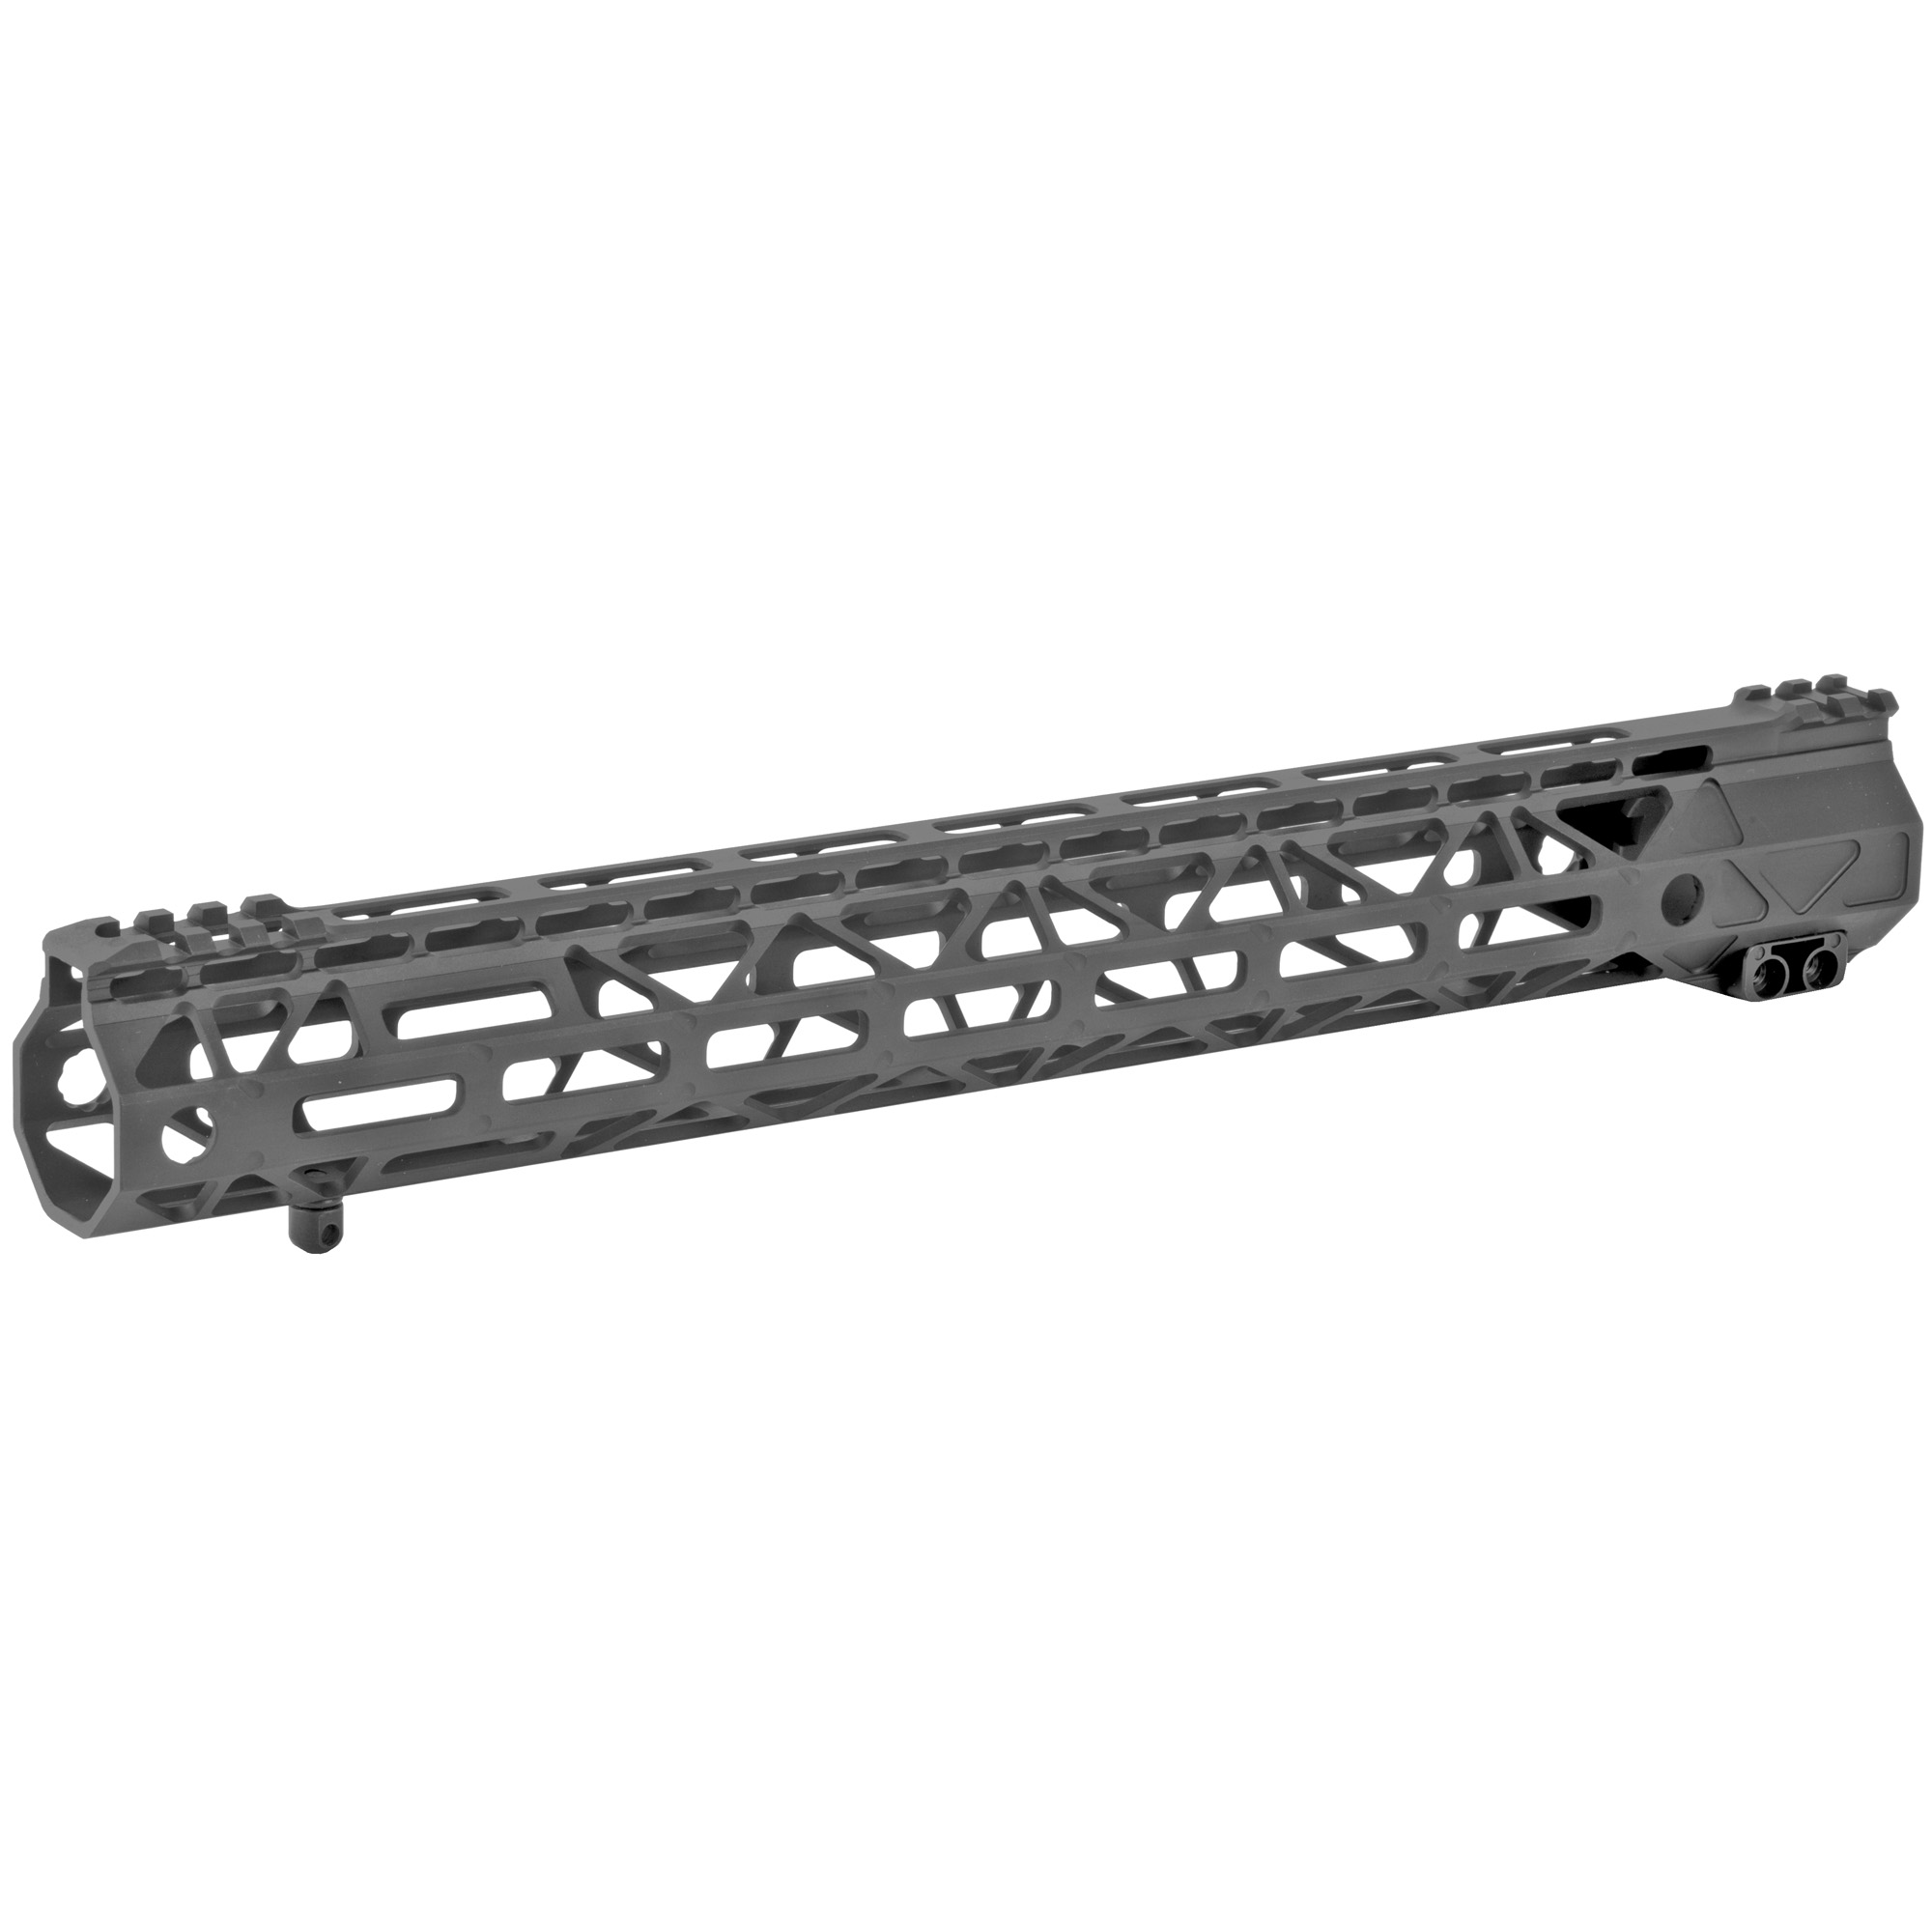 "The Battle Arms Development's Rigidrail 15"" M-Lok Handguard is designed to balance between light weight and strength/rigidity. The overall length is 15"" and the inner diameter is 1.315"". M-LOK Slots at 3"" 6"" 9"" and partial 12 o'clock positions"" and additional single M-Lock slots at four"" 45 degree positions"" for forward mounting light"" laser"" etc. It is compatible with AR-15 upper receivers and most low profile gas blocks."